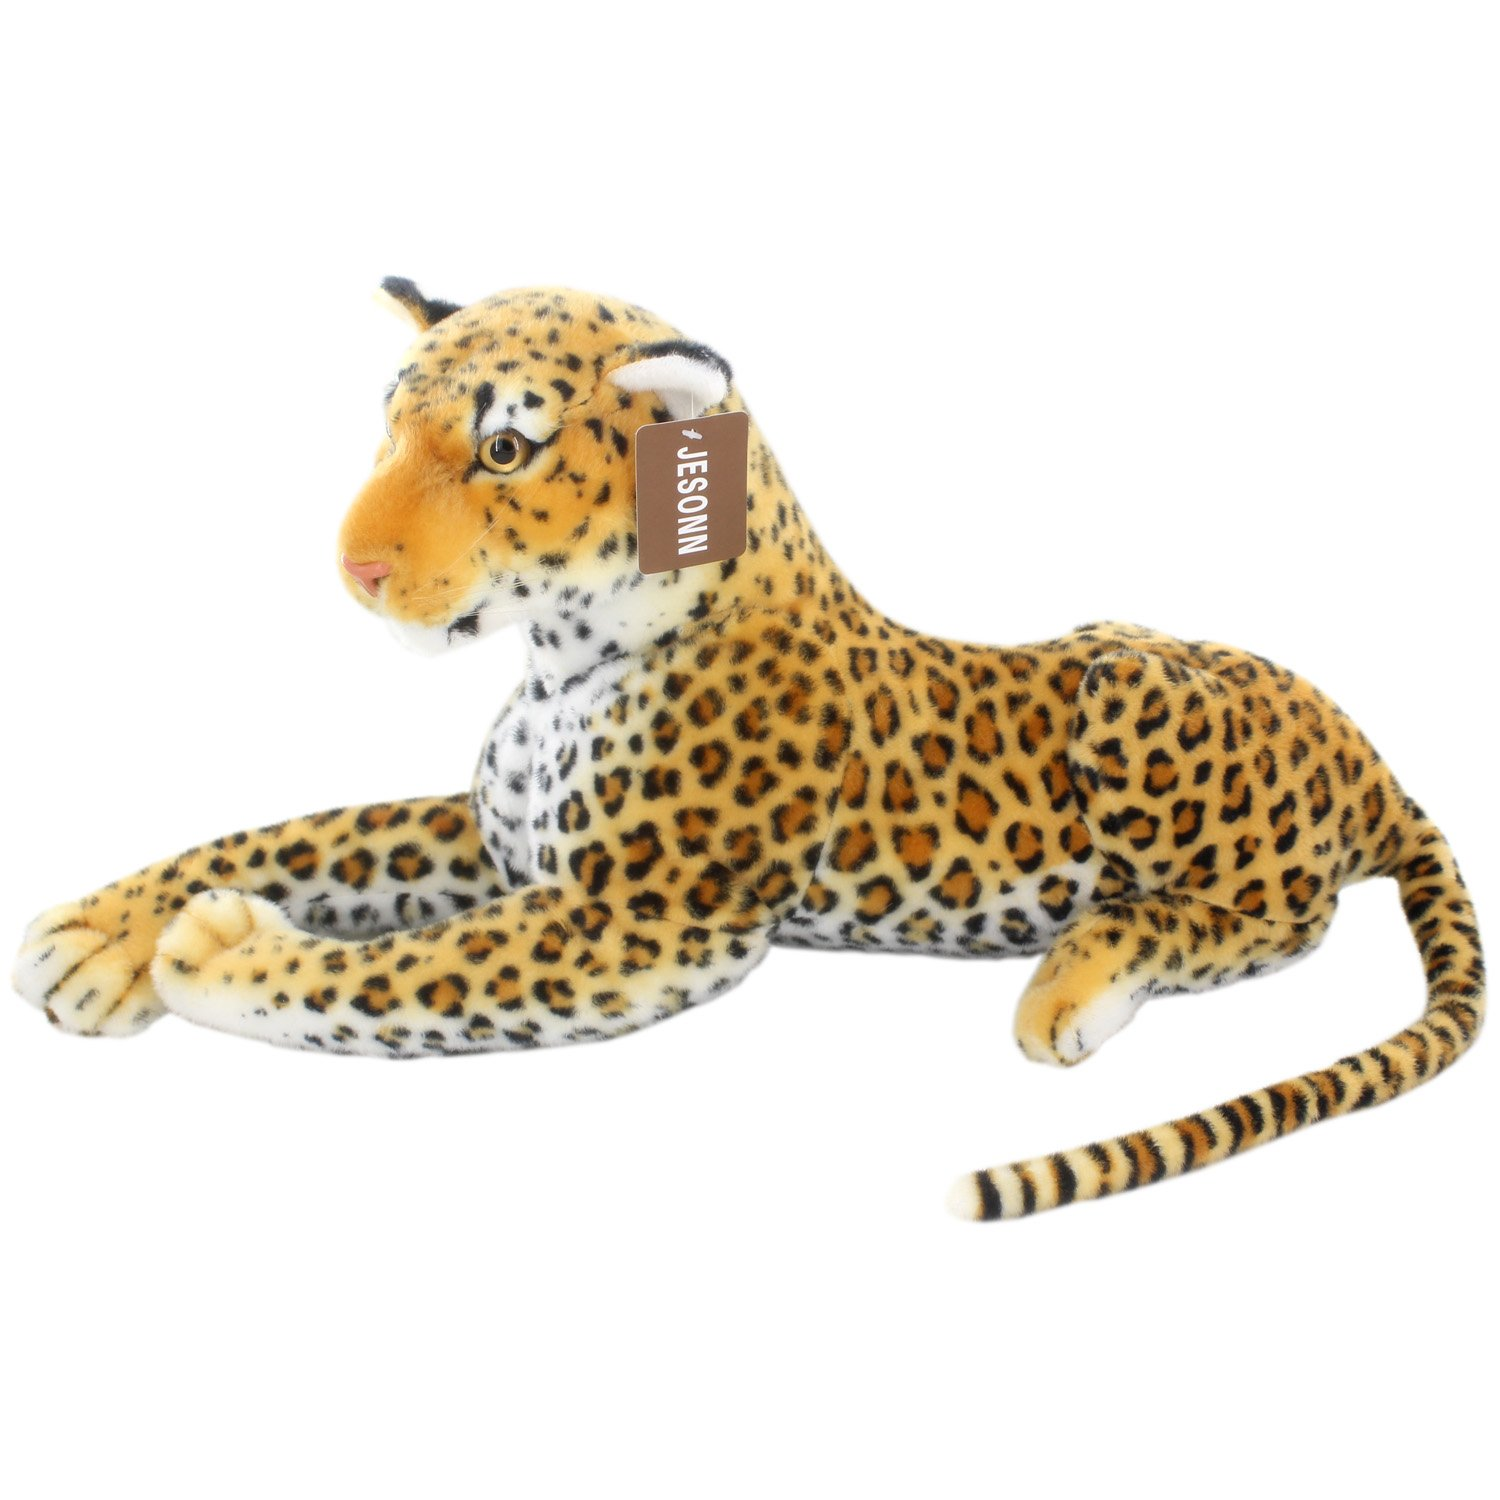 JESONN Realistic Giant Stuffed Animals Spotted Leopard Plush Toy for Children Birthday Gifts,27.5'' or 70CM,1PC by JESONN